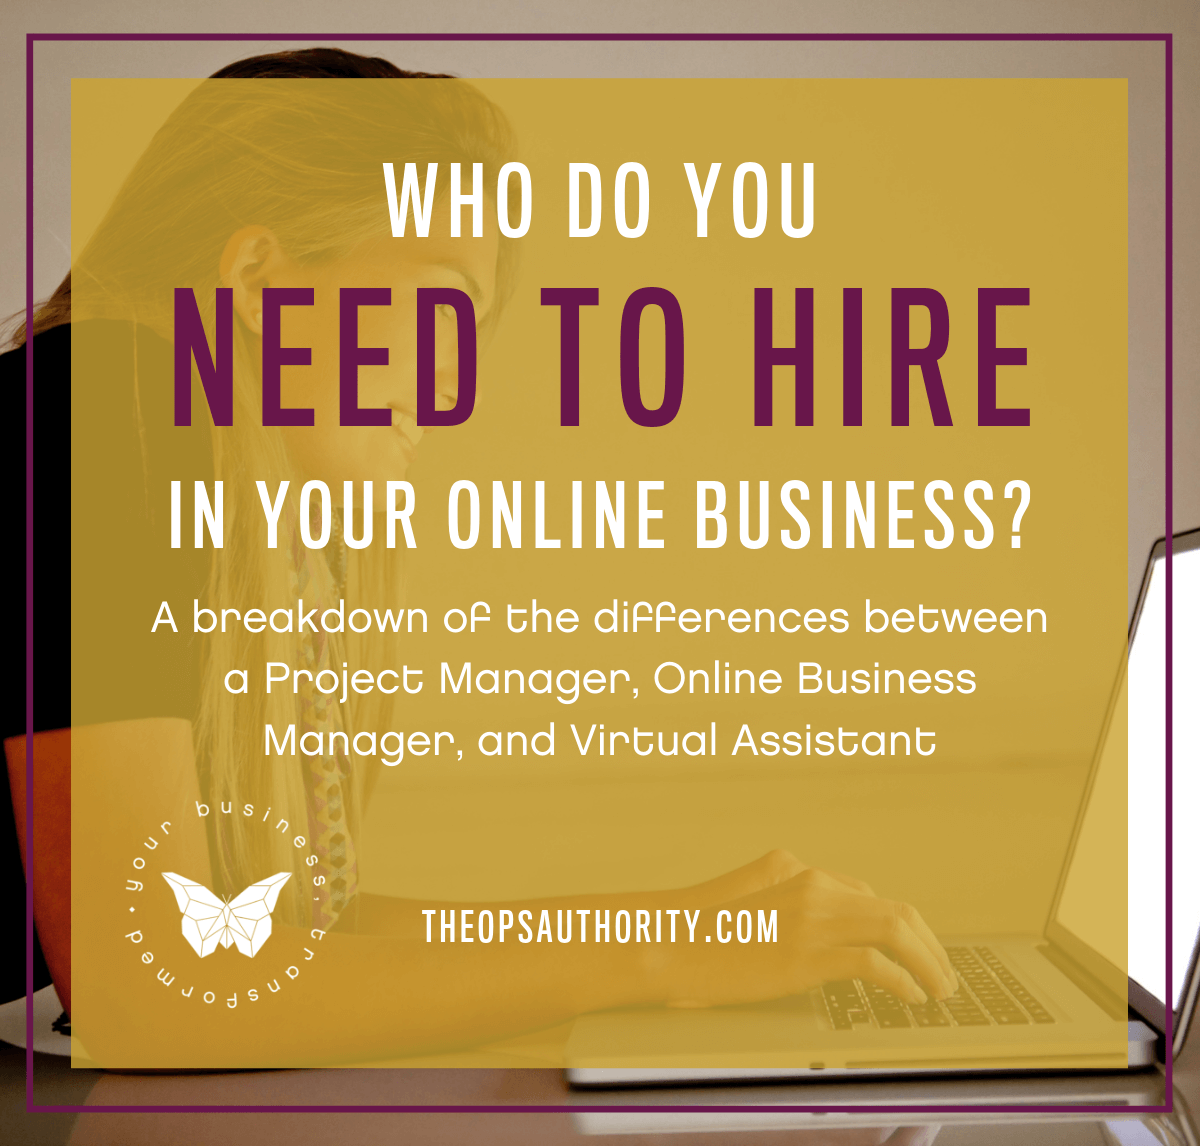 Who do you need to hire in your business?